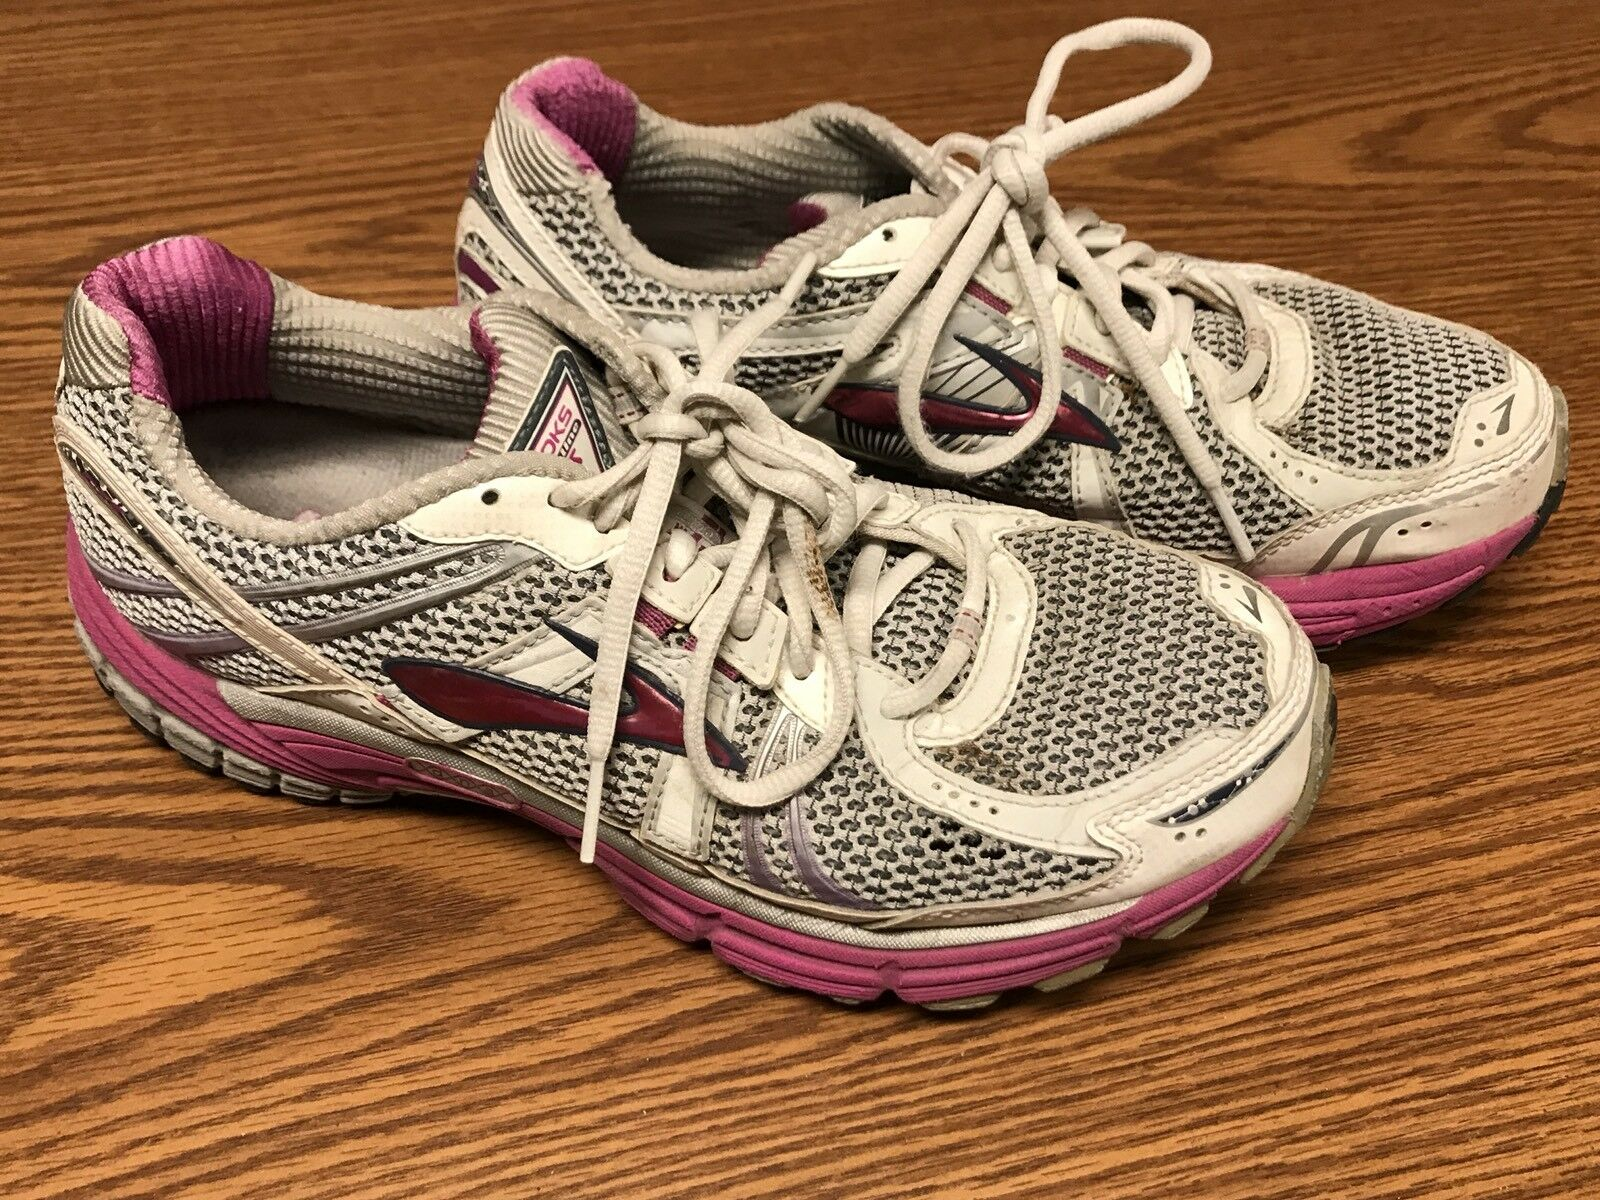 Brooks Adrenaline GTS 12 Women's Pink Purple White Athletic Running shoes Sz 10